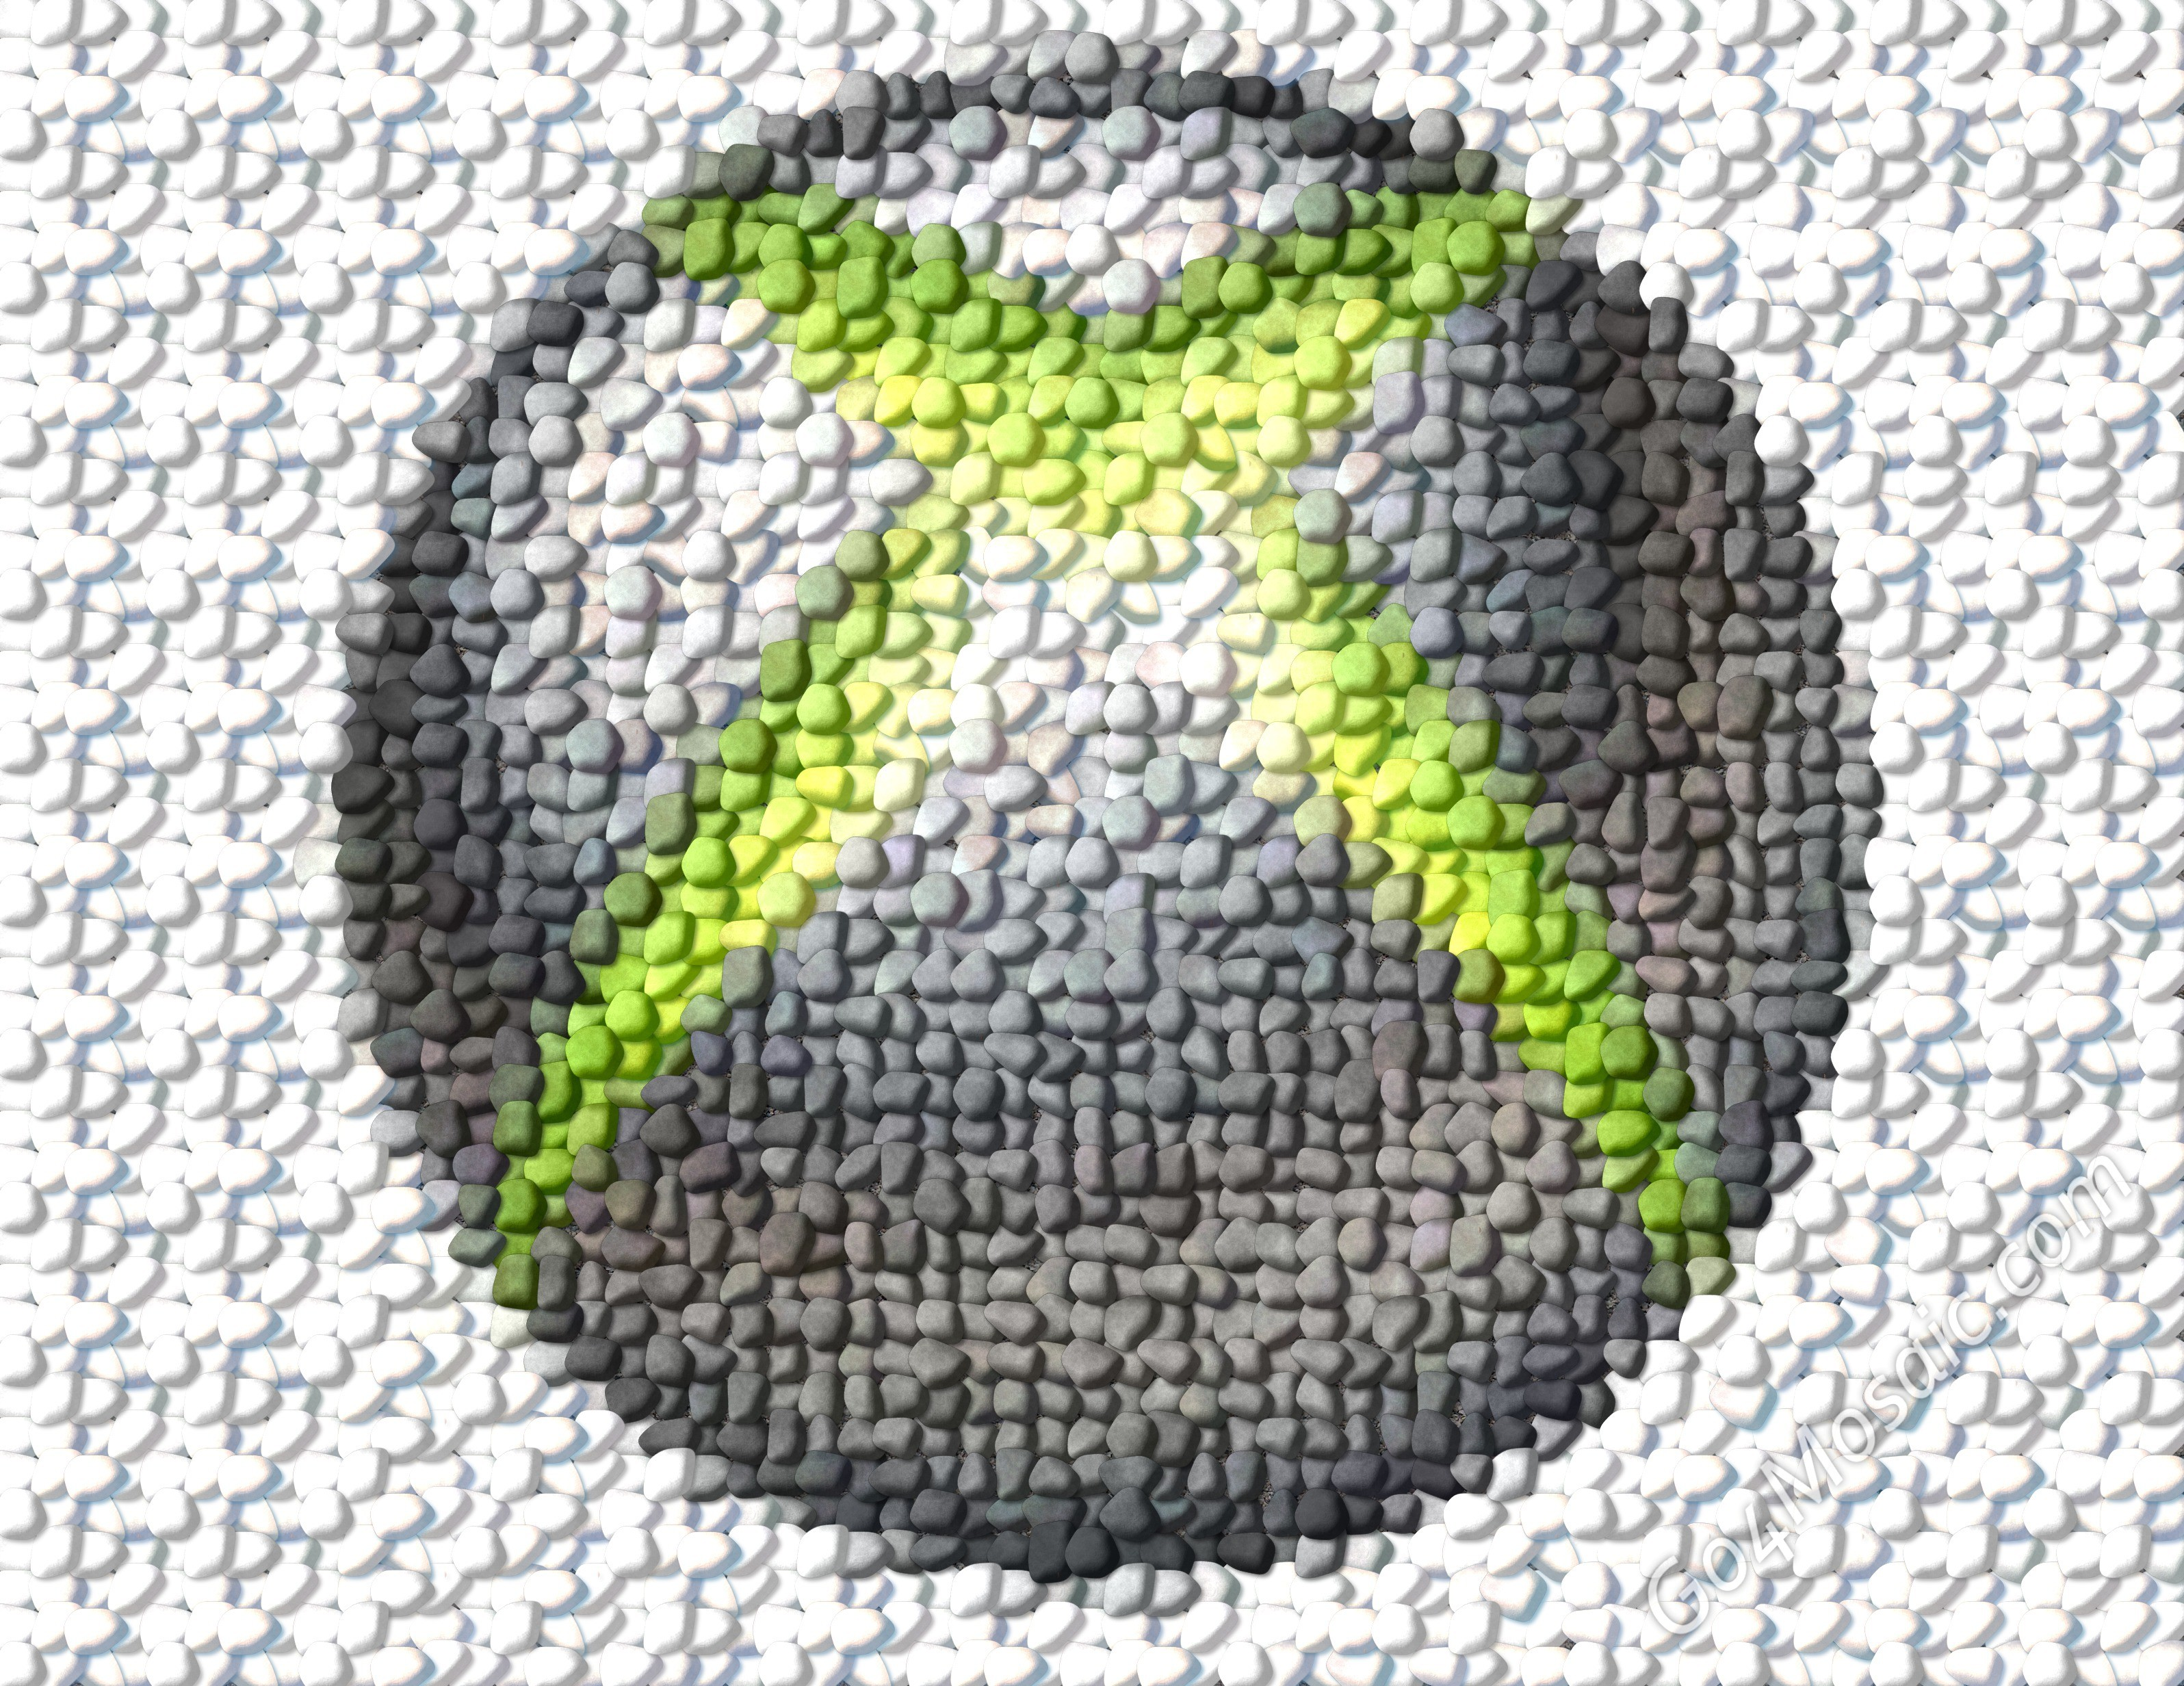 Xbox 360 logo from Pebbles